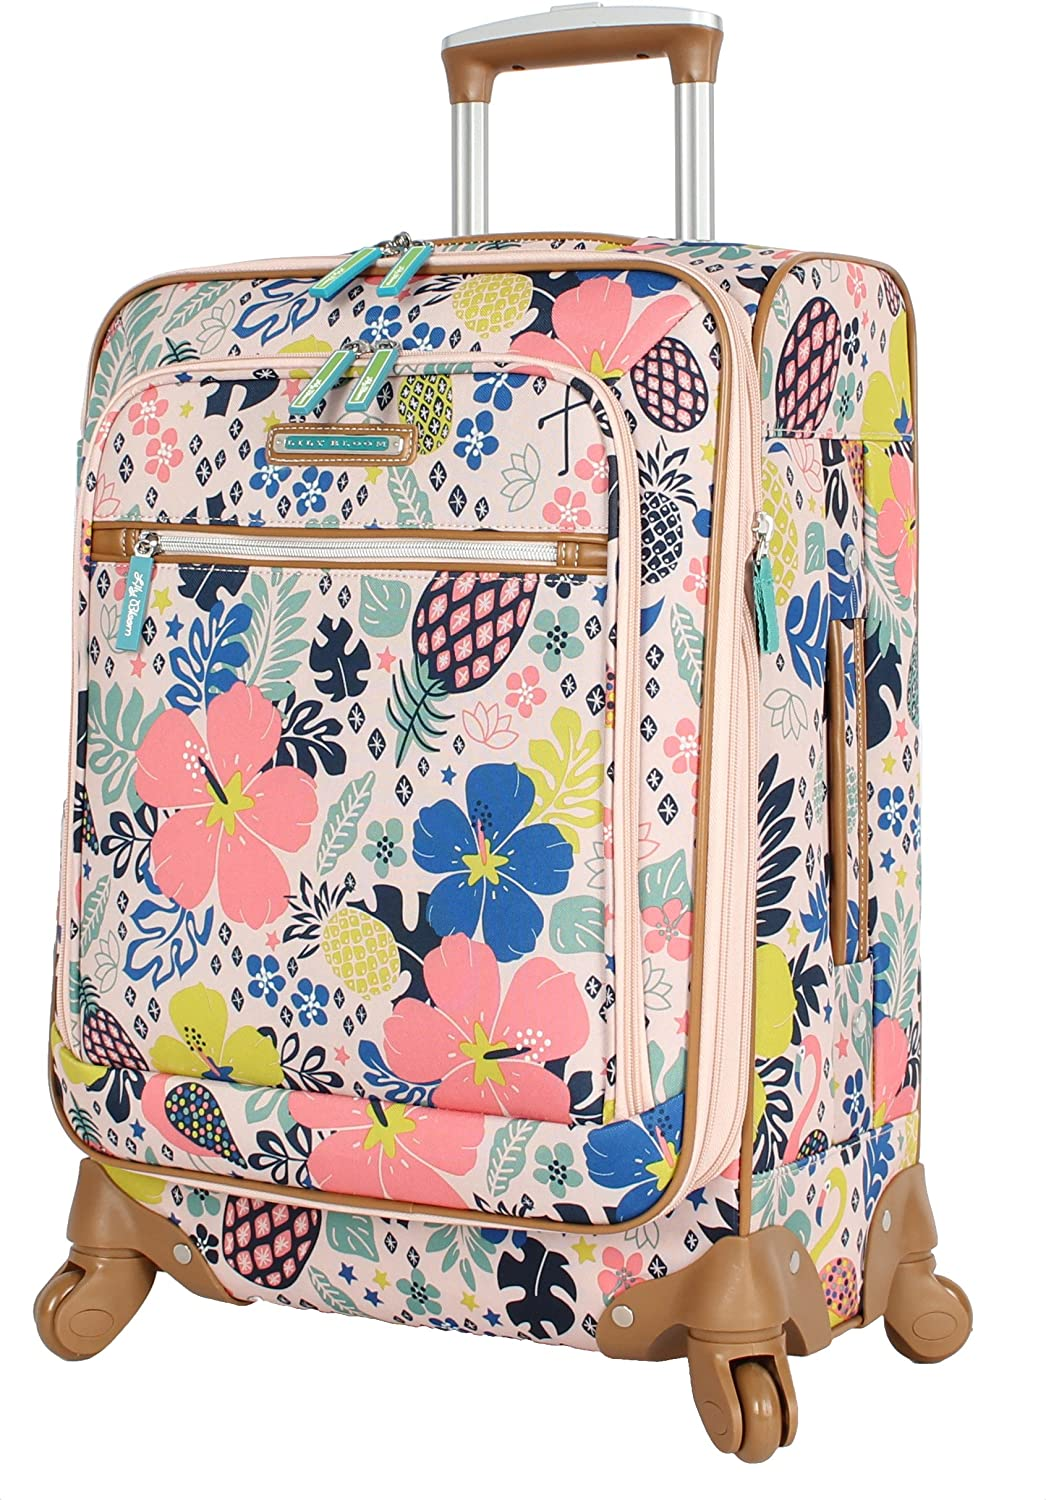 Lily Bloom Luggage Carry On Expandable Design Pattern Suitcase For Woman With Spinner Wheels (Trop Pineapple, 20in)